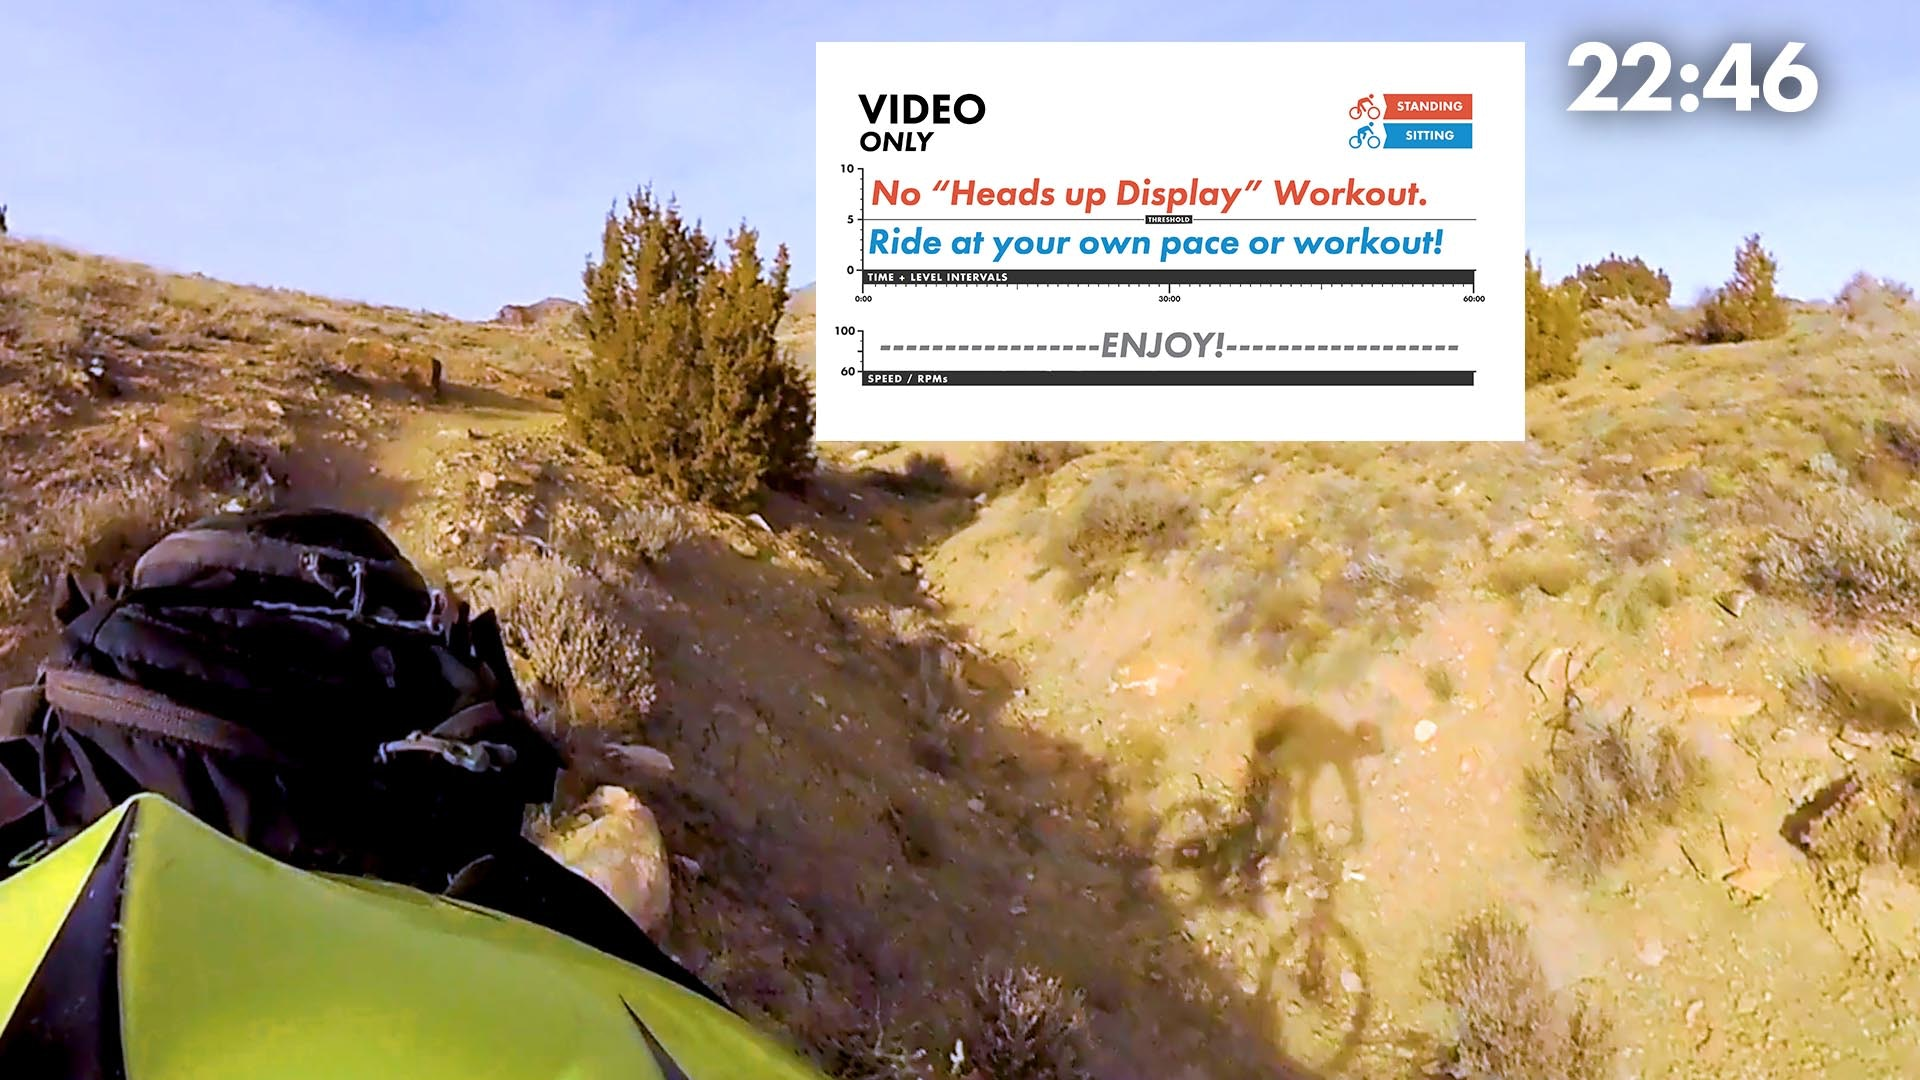 Fruita 18 Road Desert First Person View FREE RIDE